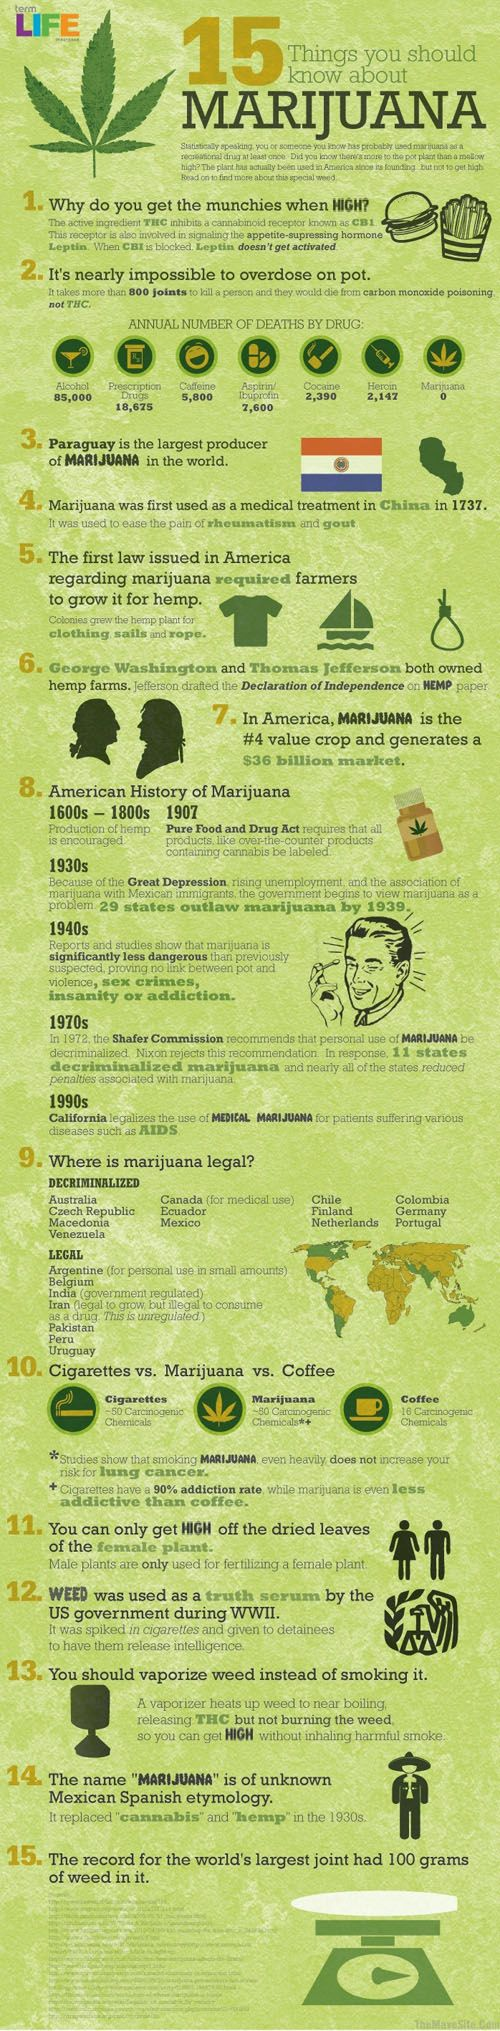 15 Things to Know About Marijuana – Infographic on (Ex: #10 compares chemicals and addiction rates vs coffee & cigs) http://www.bestinfographic.co.uk